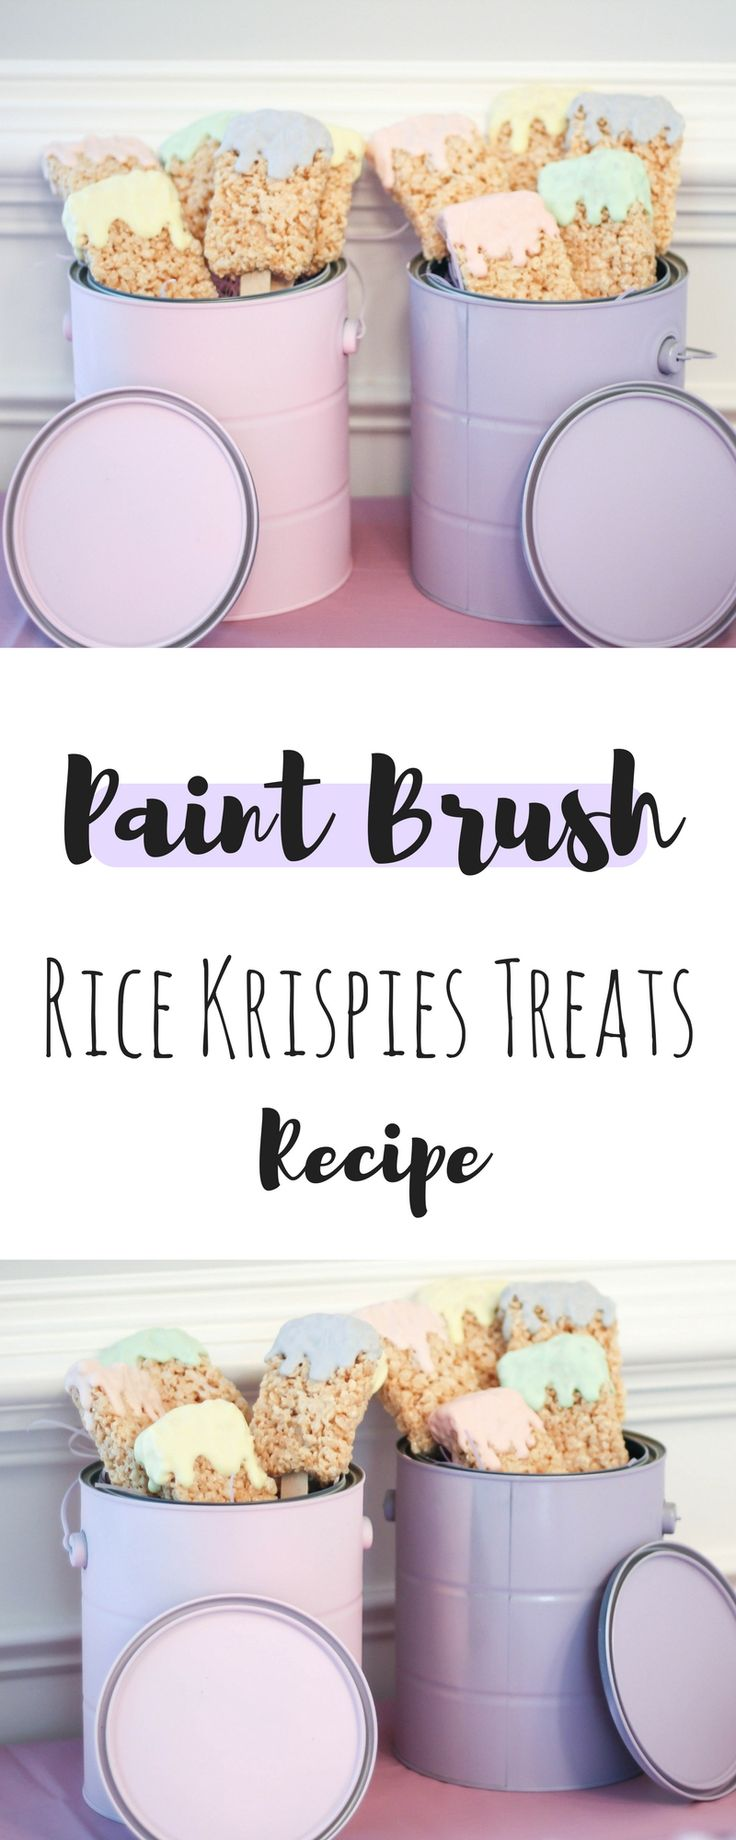 Easy DIY Paint Brush Rice Krispies Treats | Birthday Party Decor | Art Birthday Theme | Pastel Birthday Theme | Birthday Party Decor | Birthday Party Food | Birthday Desserts | Busy Little Izzy Blog